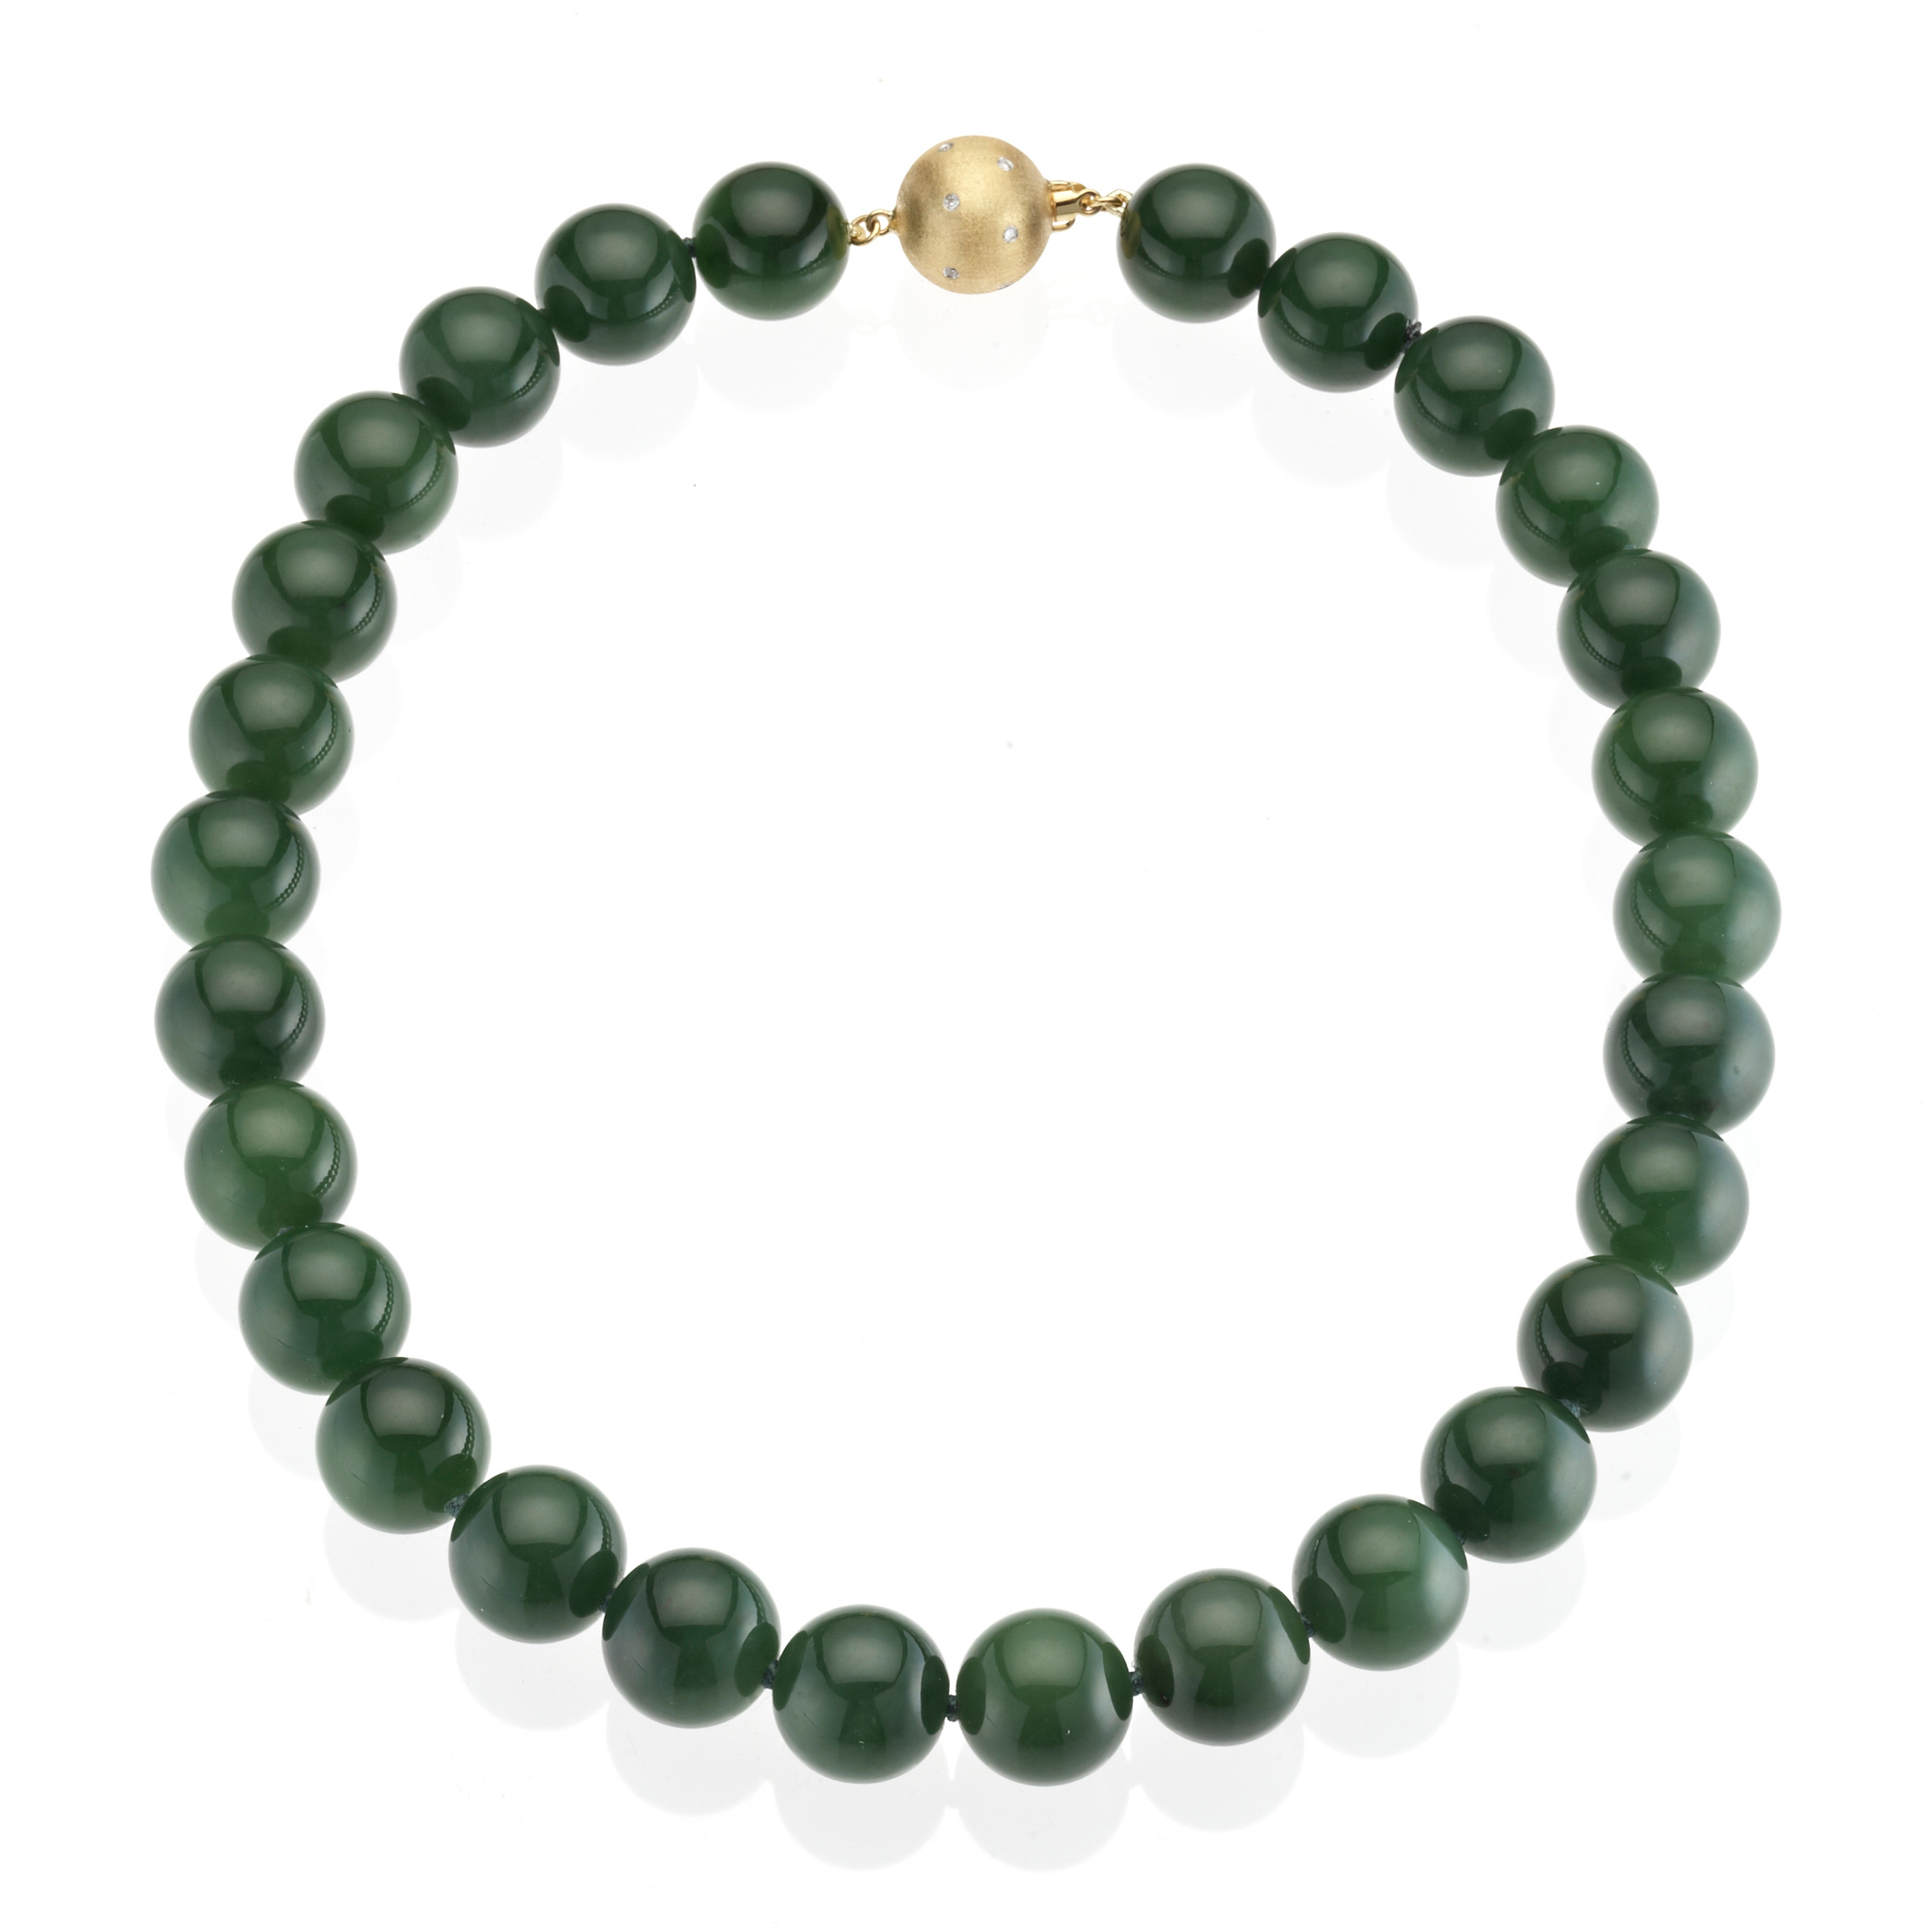 Green Nephrite Jade & Diamond Necklace